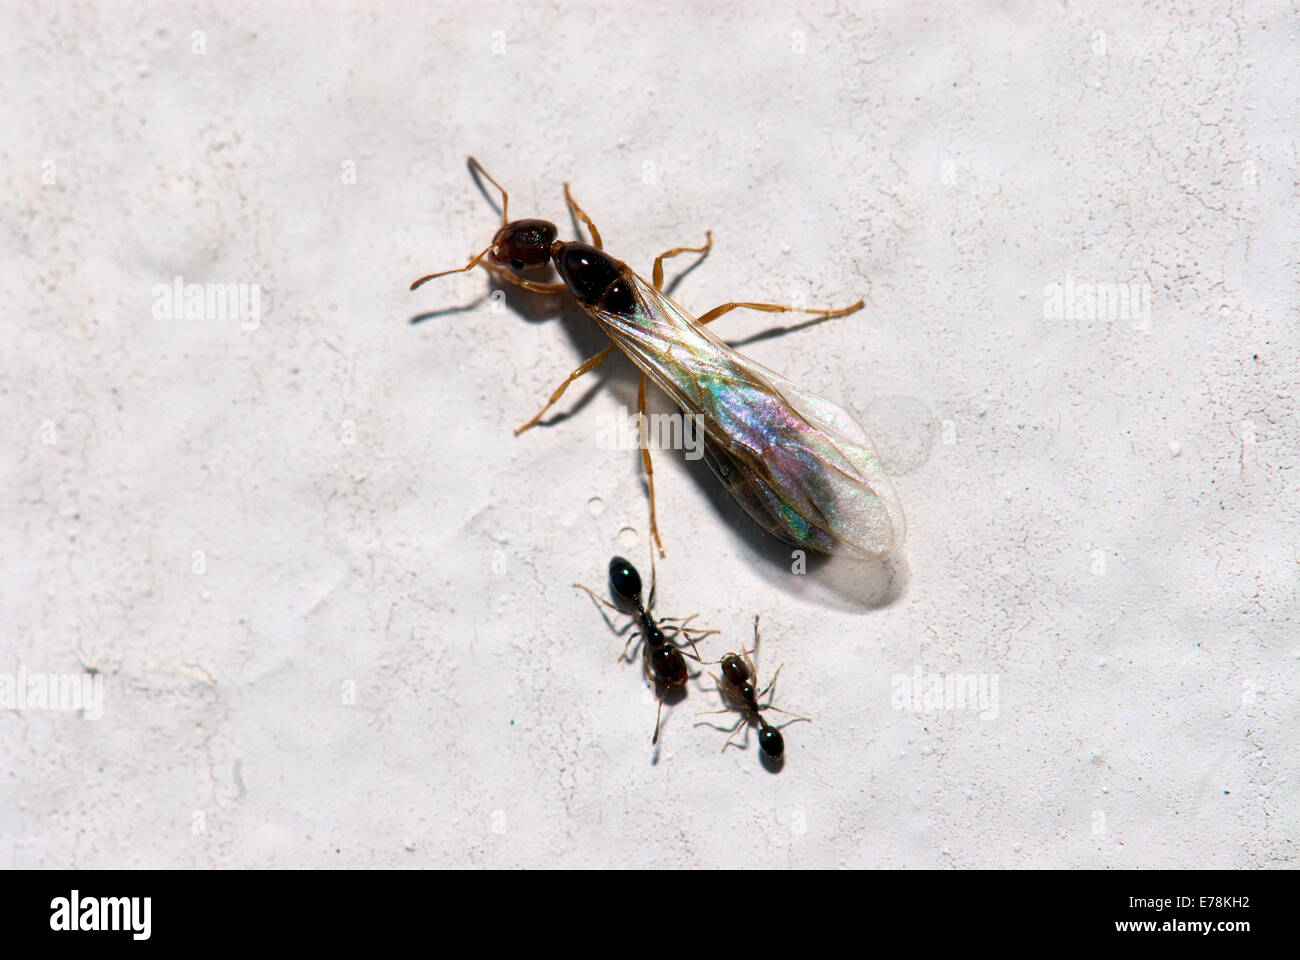 Ant wings - Stock Image